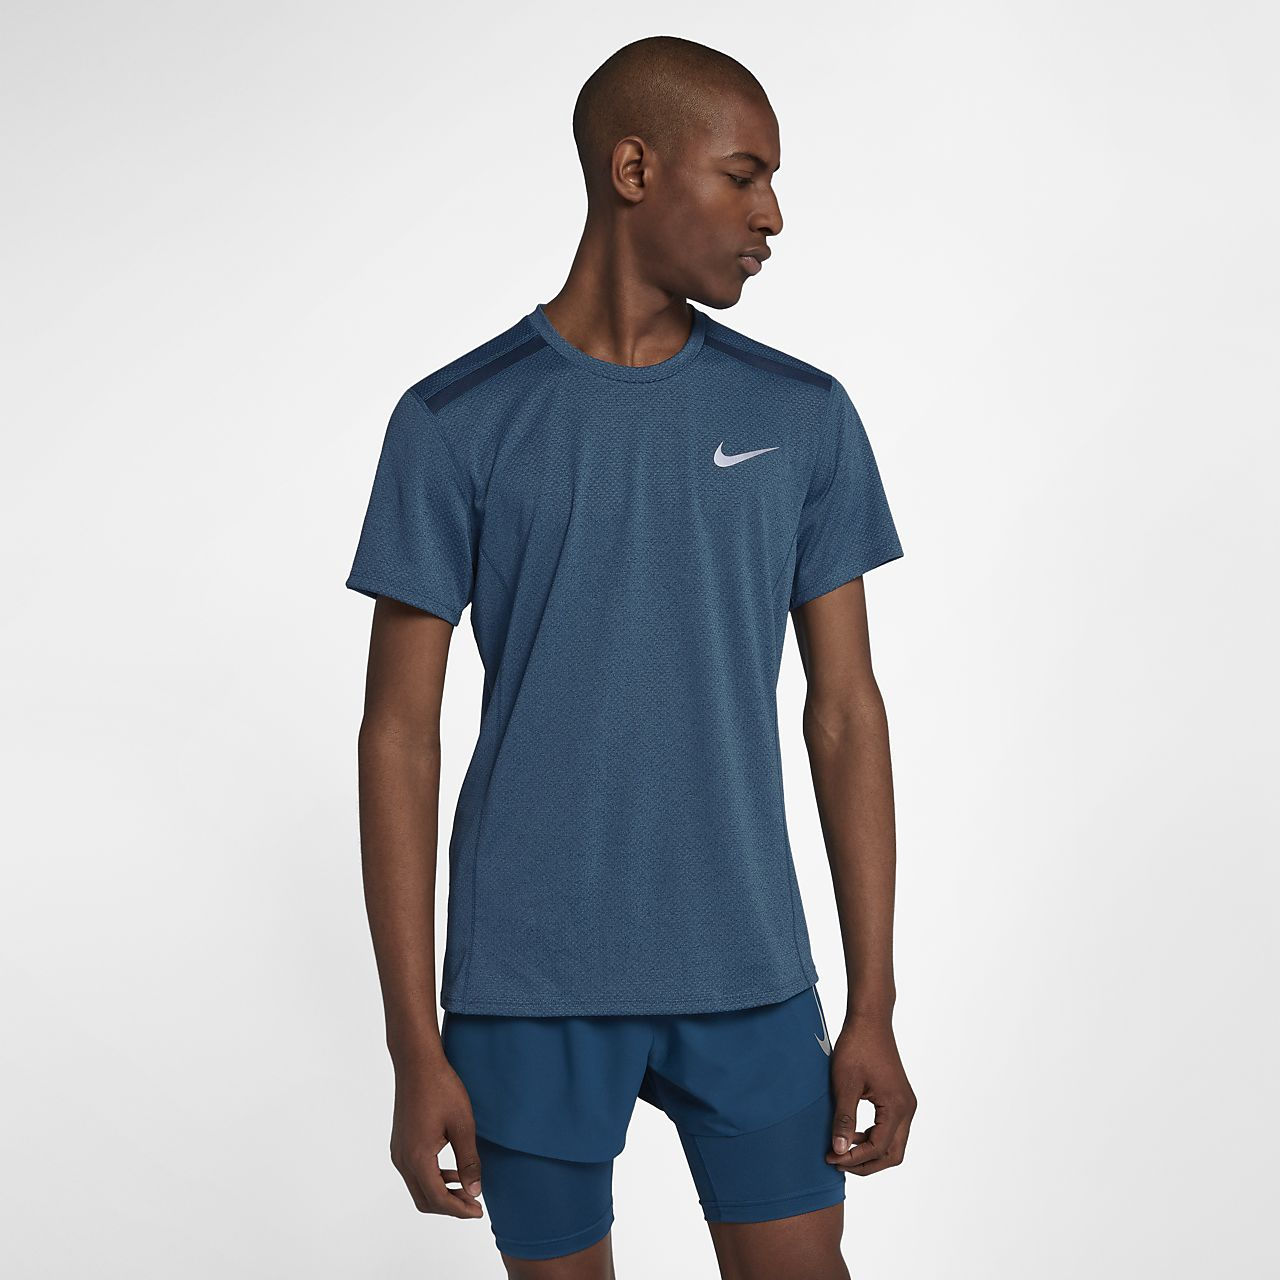 f6289a775abe2 Nike Dri-FIT Miler Cool Men s Short-Sleeve Running Top. Nike.com AU